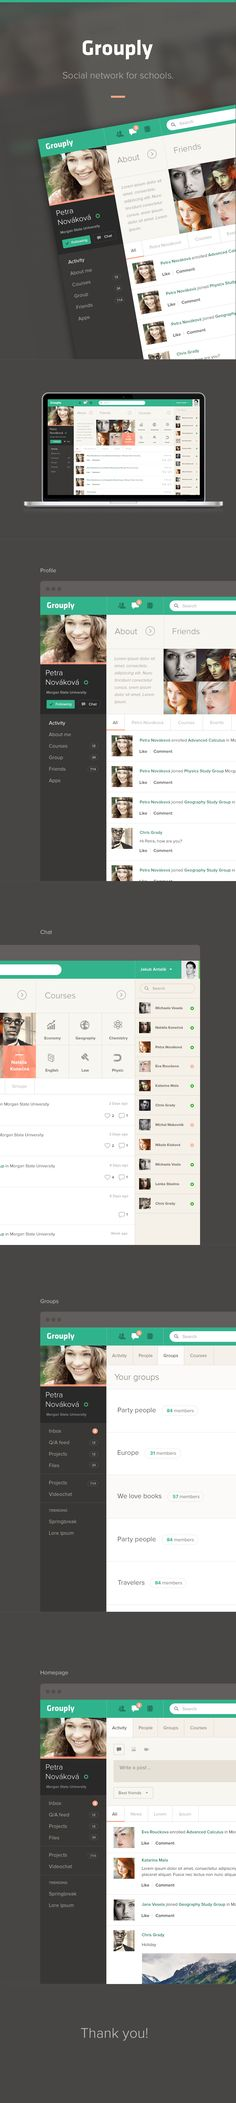 Grouply UI/UX, Web Design #flat